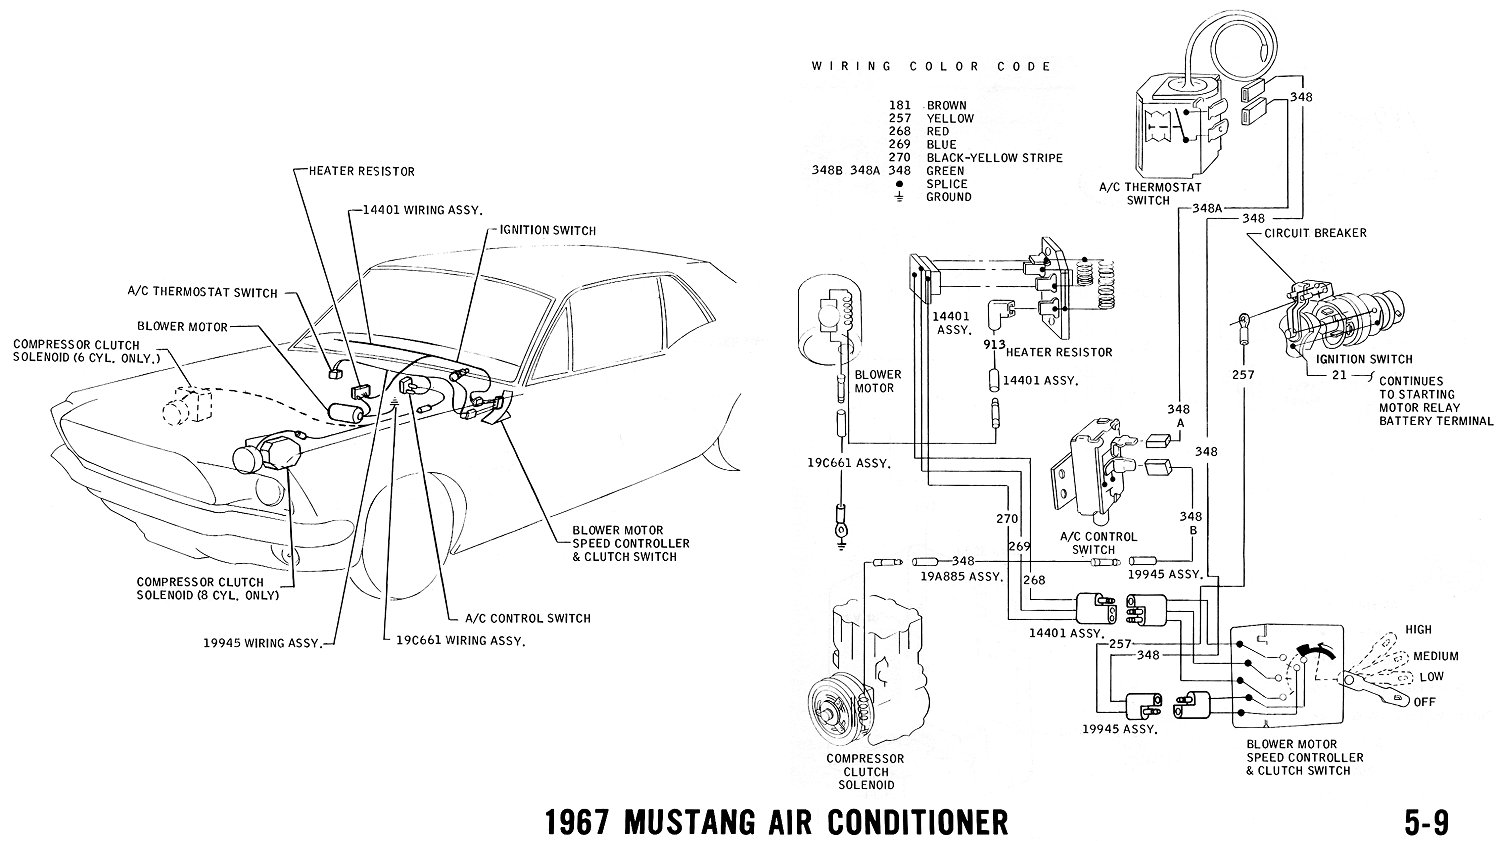 1967 mustang wiring and vacuum diagrams average joe restoration rh averagejoerestoration com 67 mustang dash wiring diagram 1967 mustang instrument cluster wiring diagram